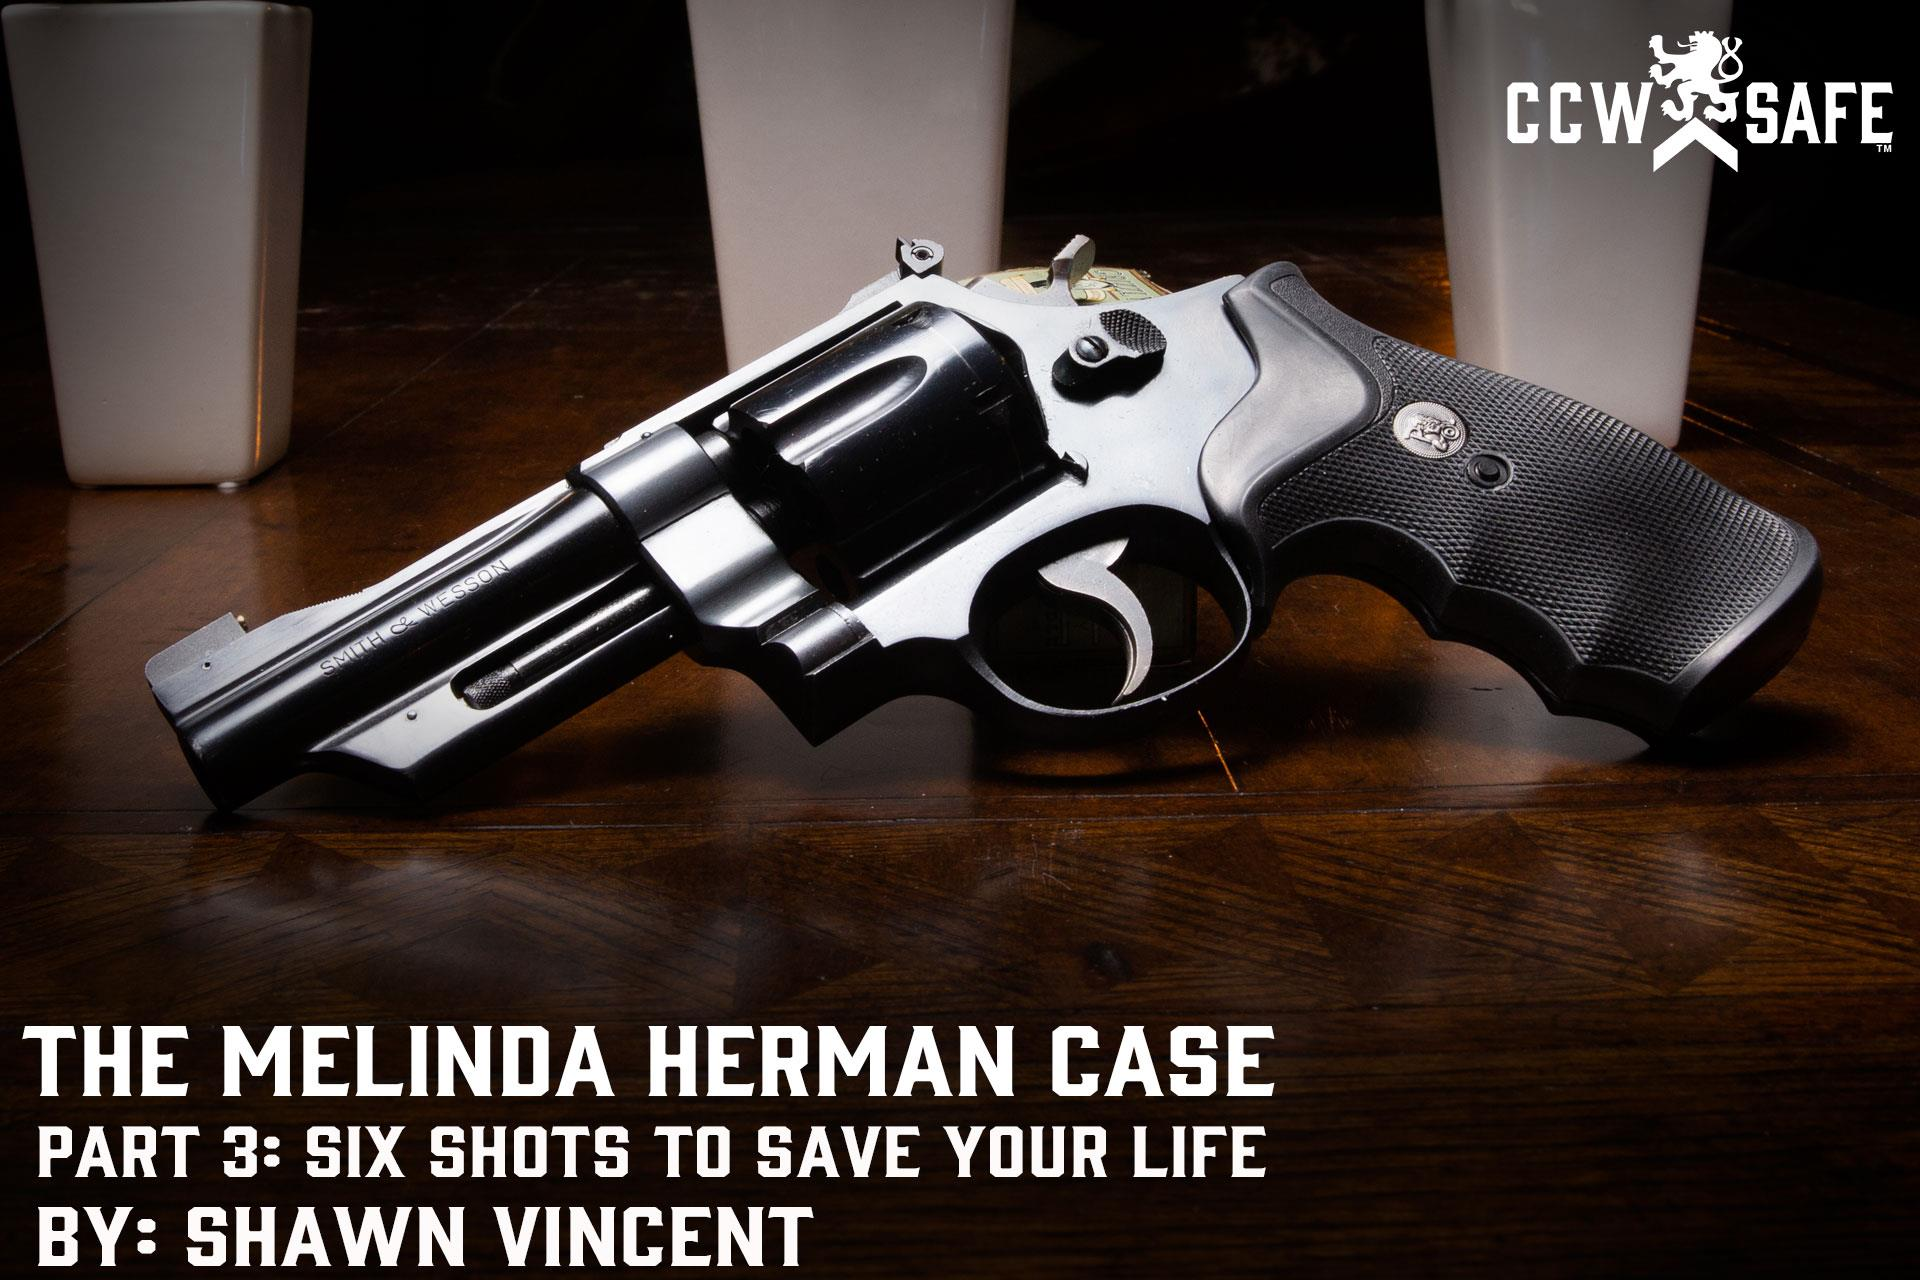 The Melinda Herman Case Part 3: Six Shots to Save Your Life